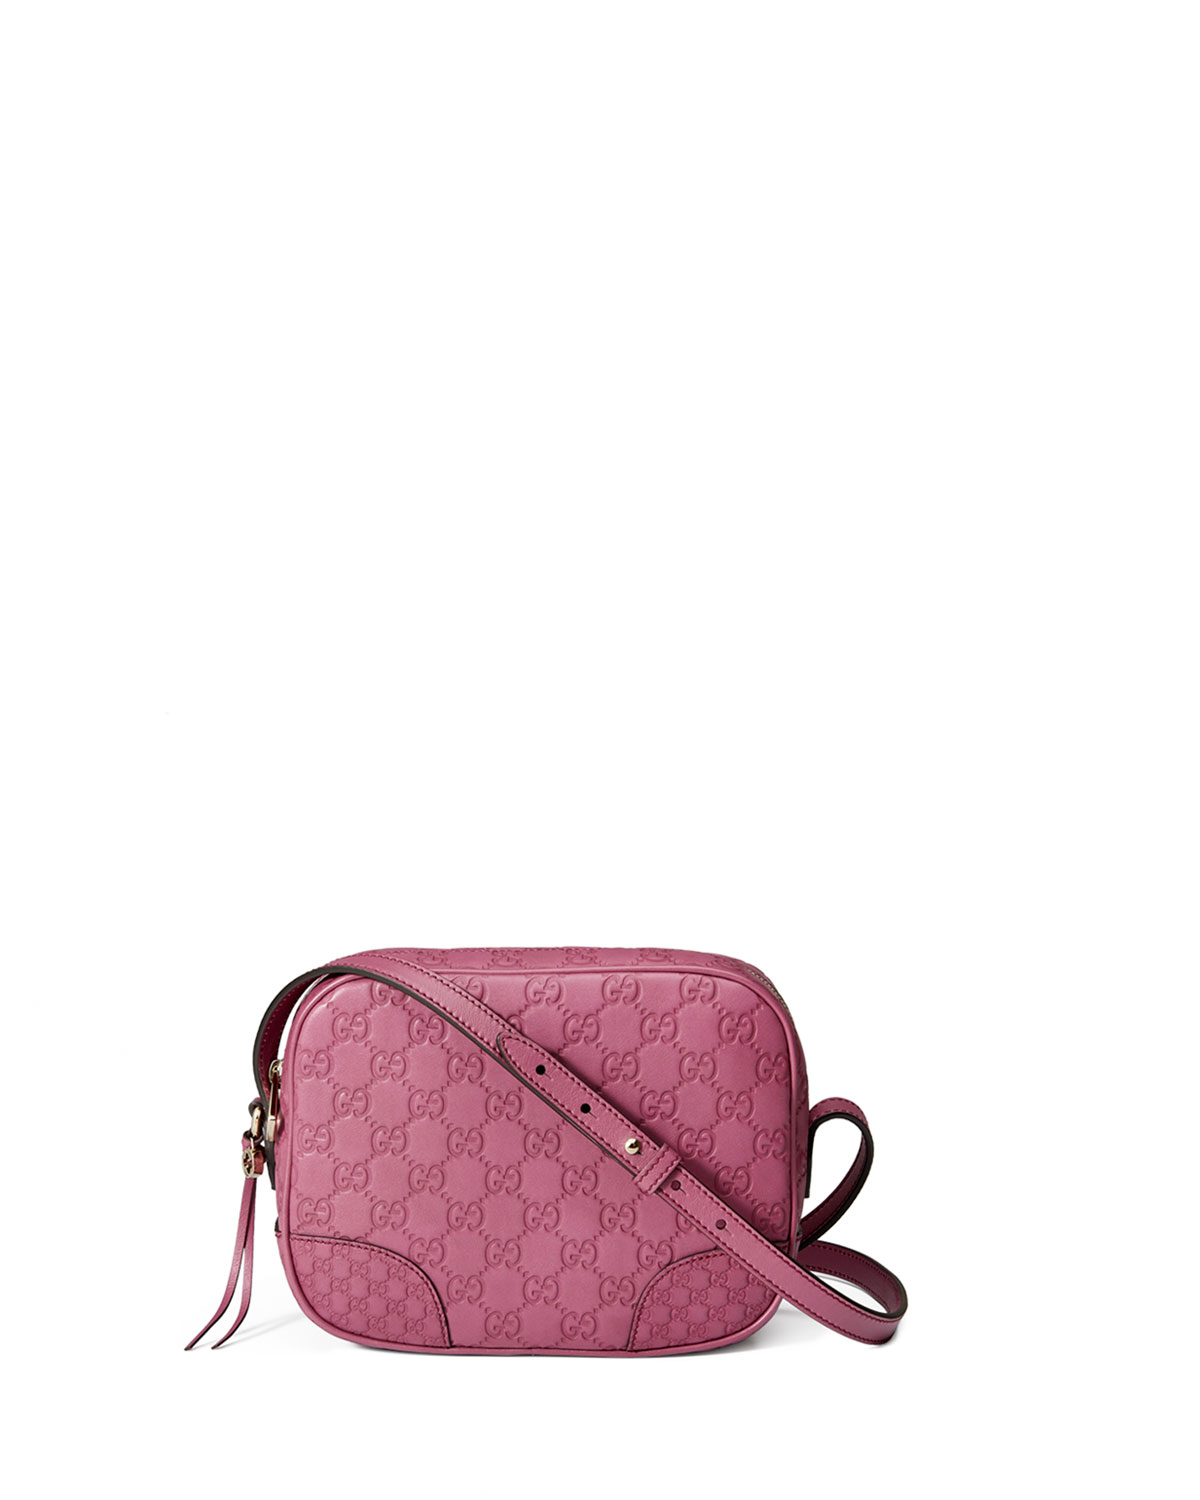 4692679d44c Gucci Bree Guccissima Leather Disco Bag